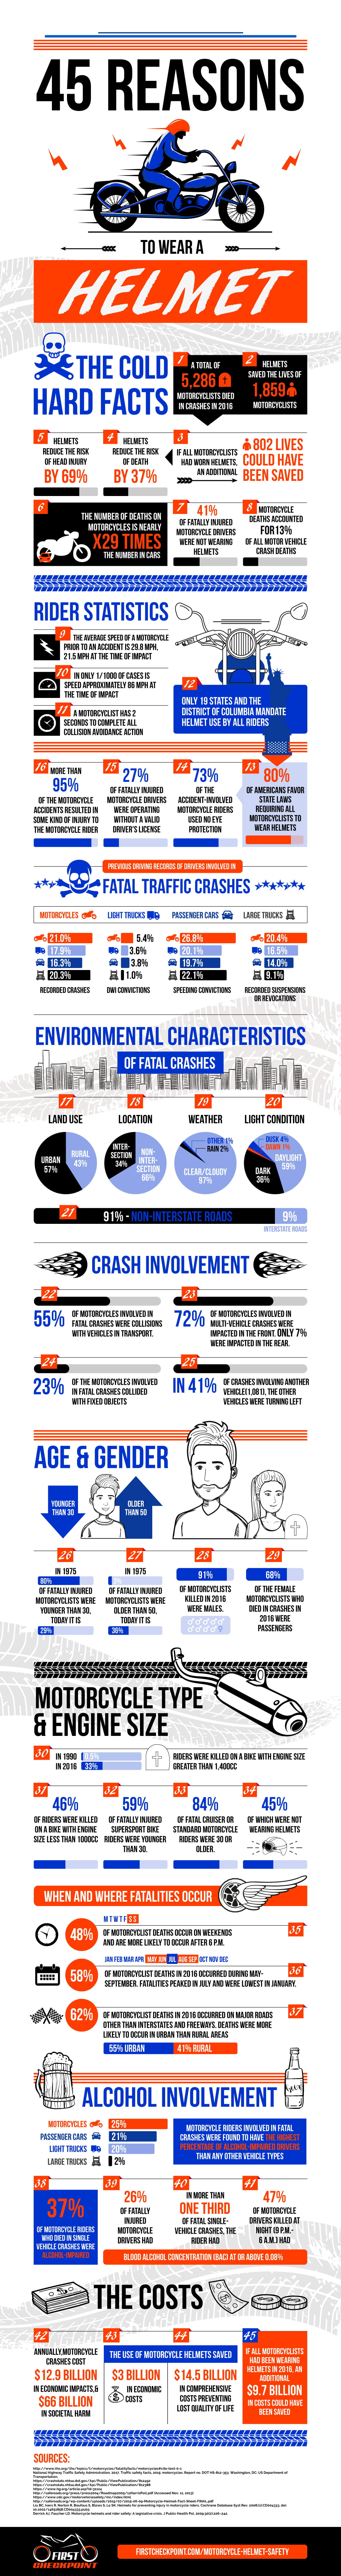 45 Reasons to wear a Helmet Infographic